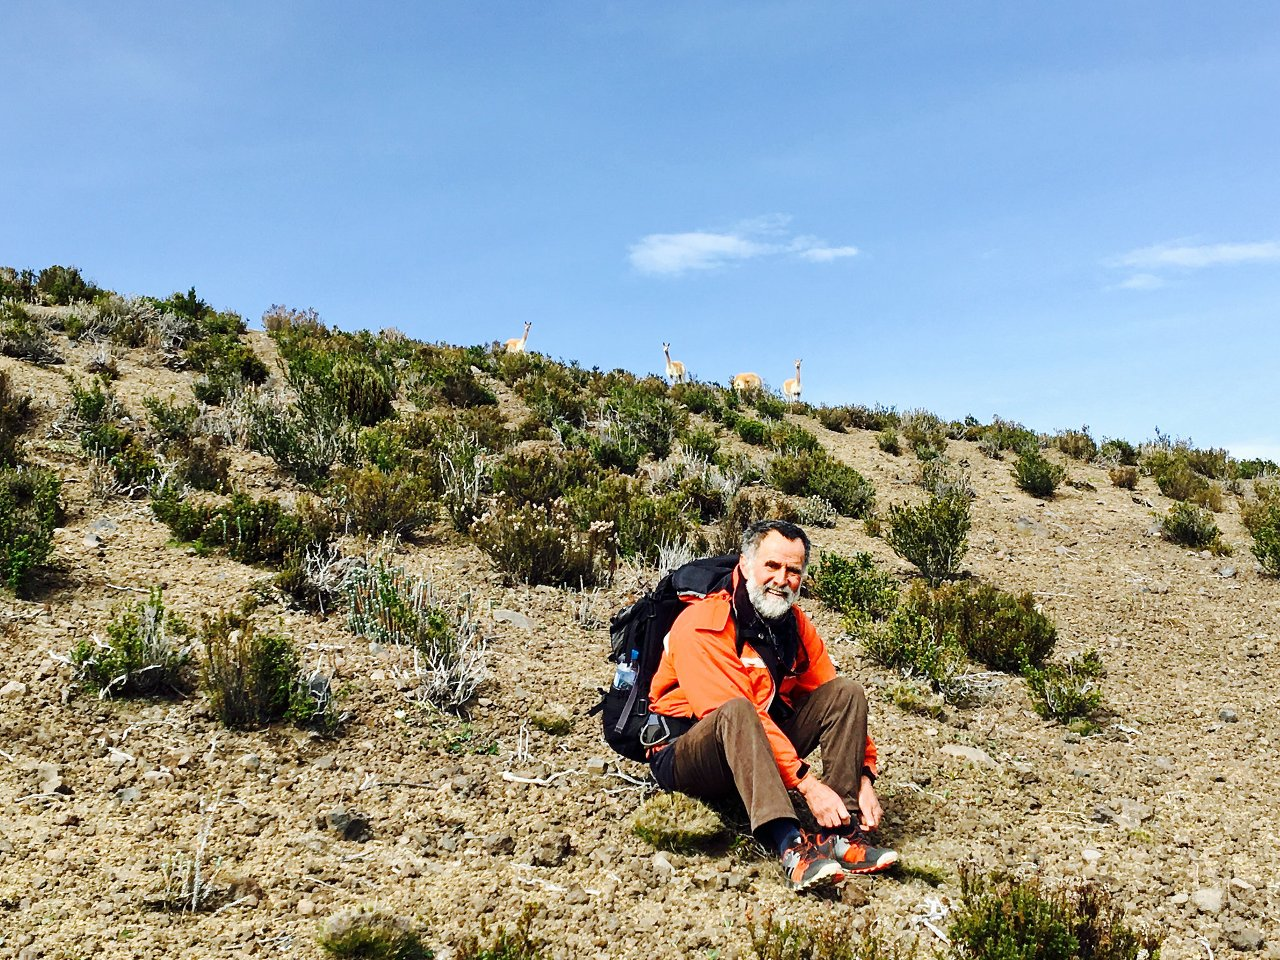 Rodrigo glided across the slopes like the vicuñas on the hillside behind him, and I didn't have a hope of keeping up with him (Photo: Edita Nichols)